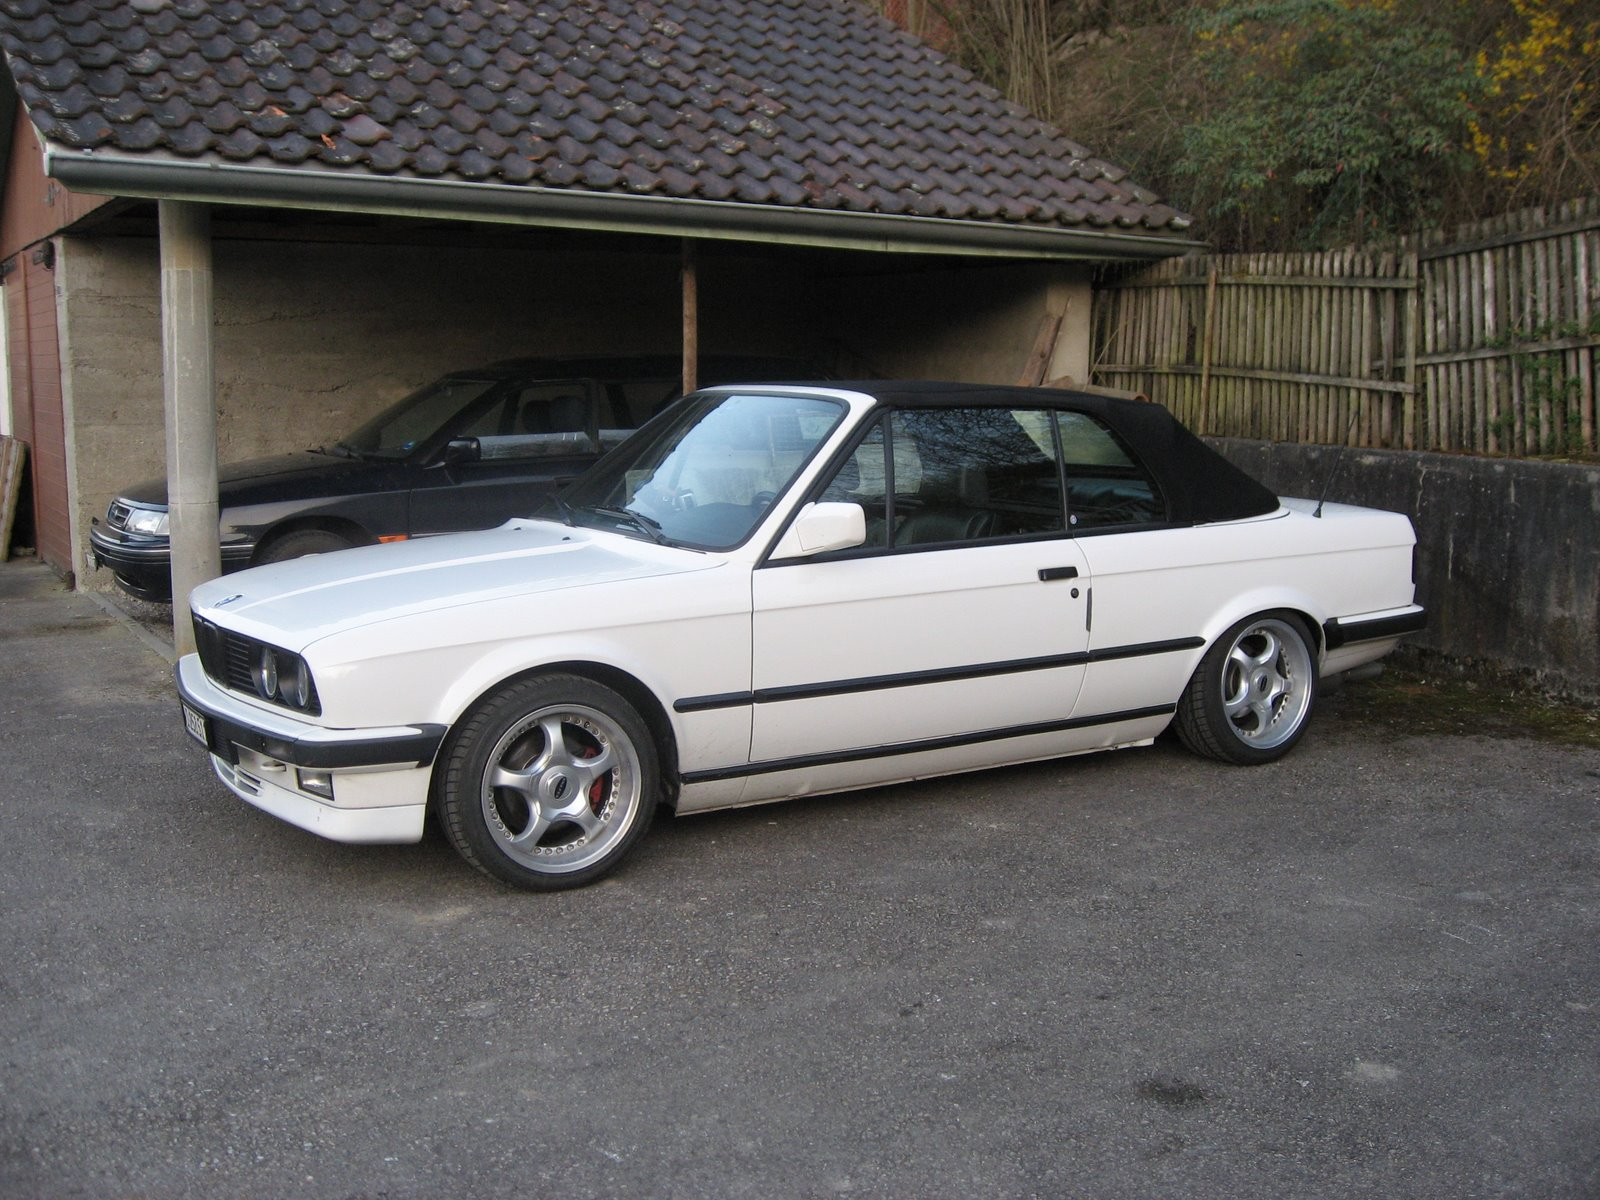 BMW 3 series 324d 1989 photo - 8